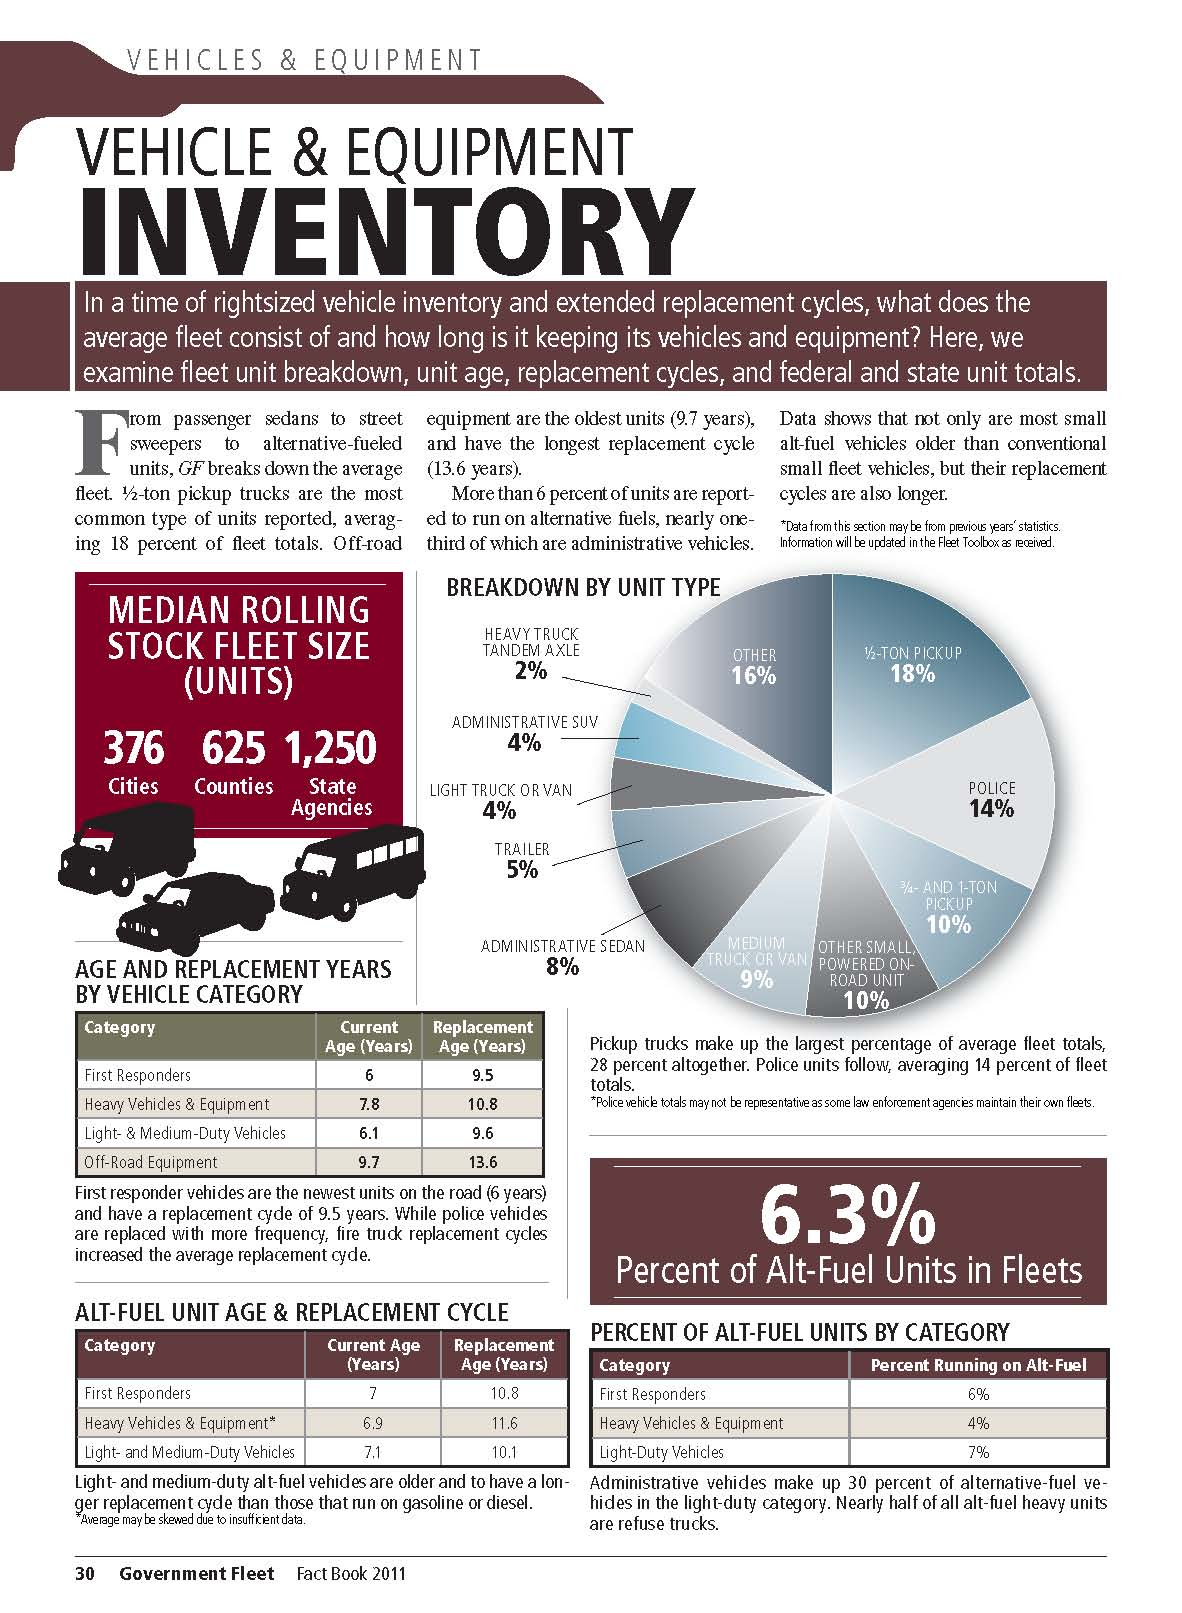 2011 Vehicle and Equipment Inventory